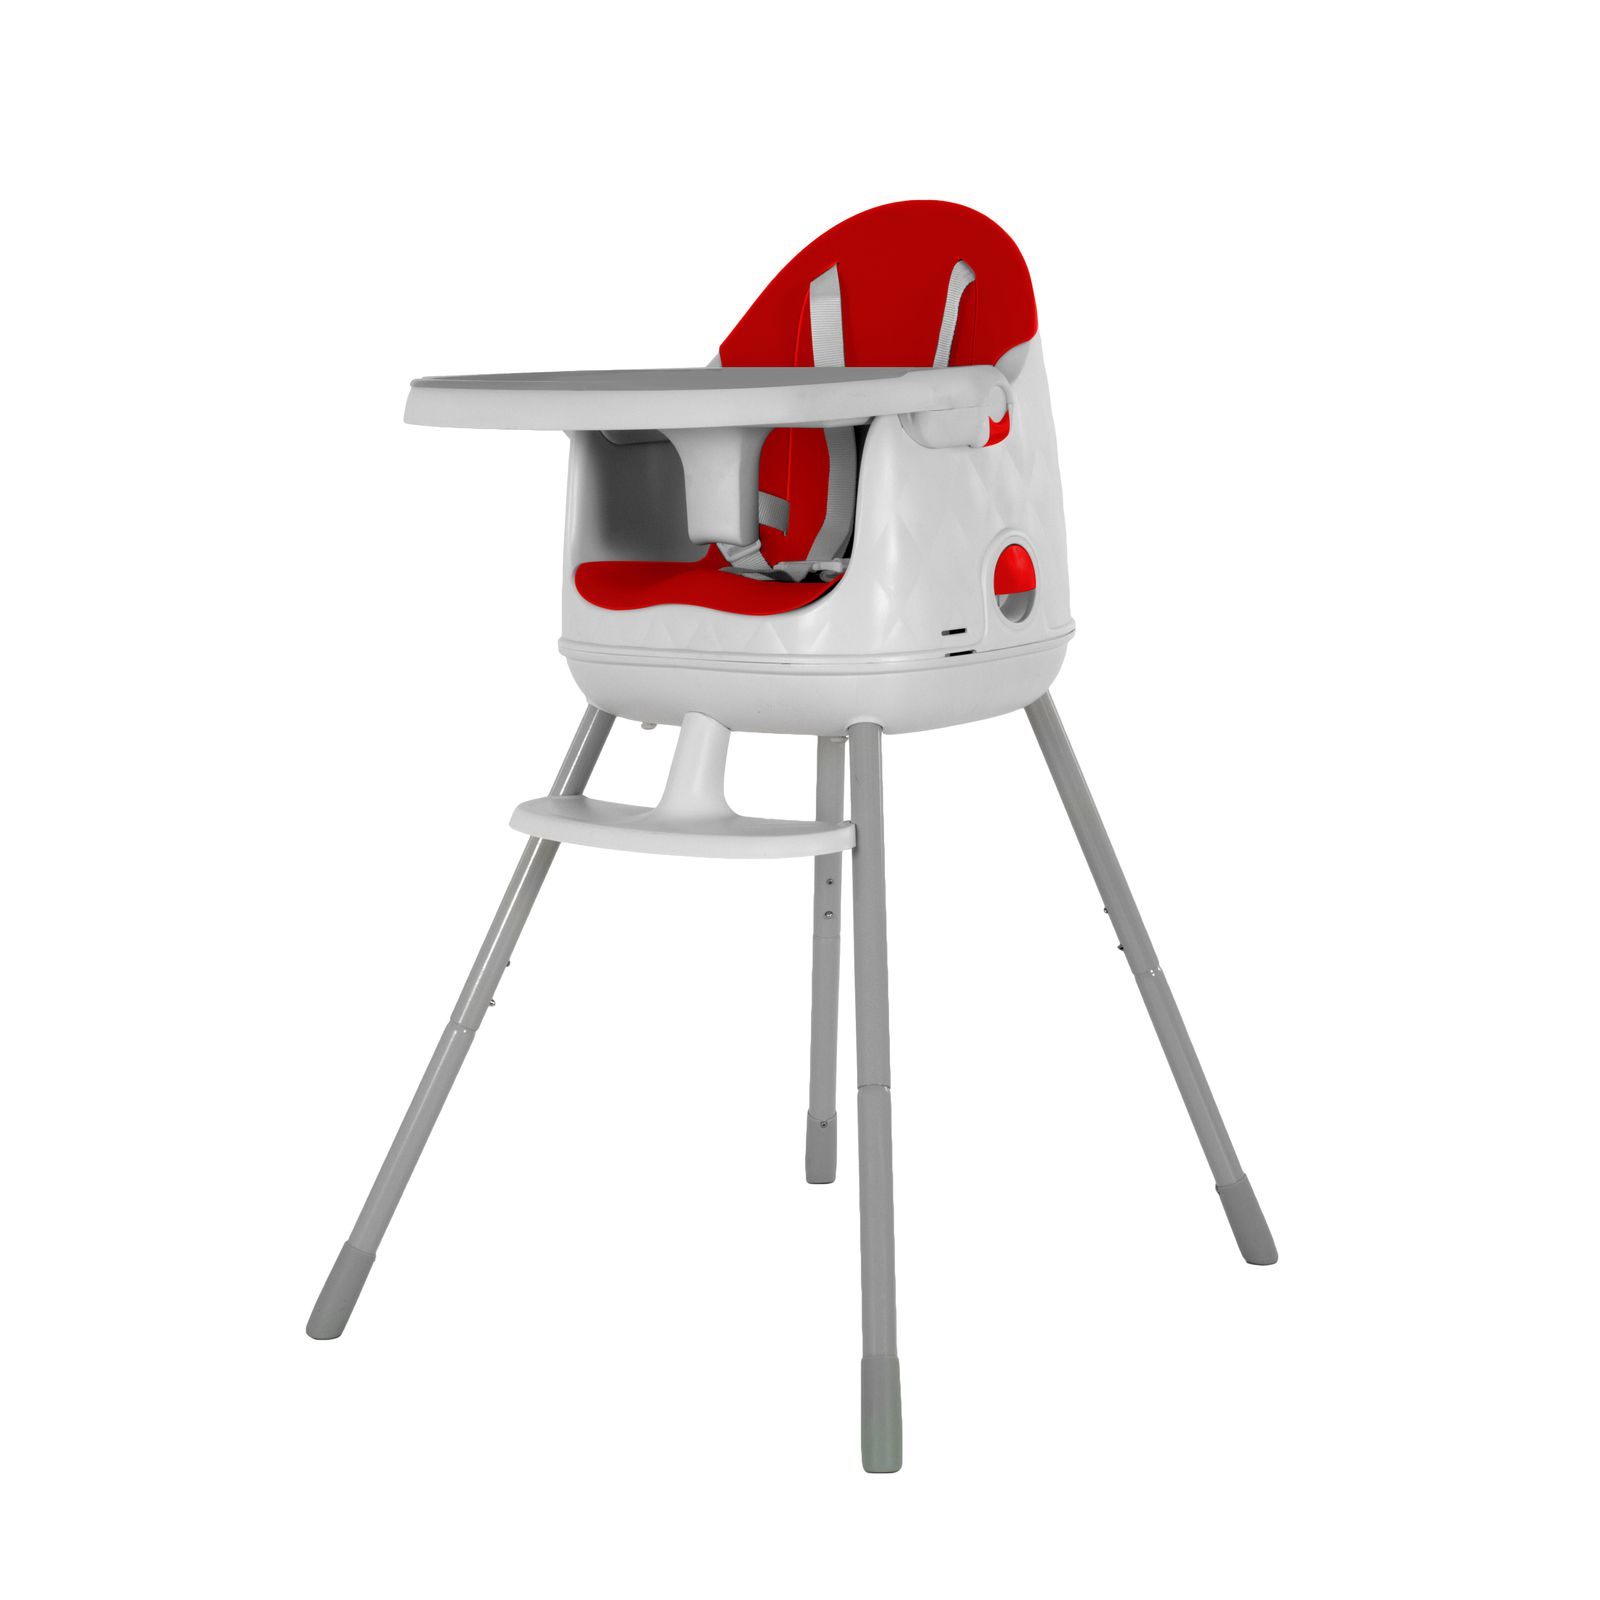 CADEIRA REFEICAO JELLY RED - SAFETY 1ST